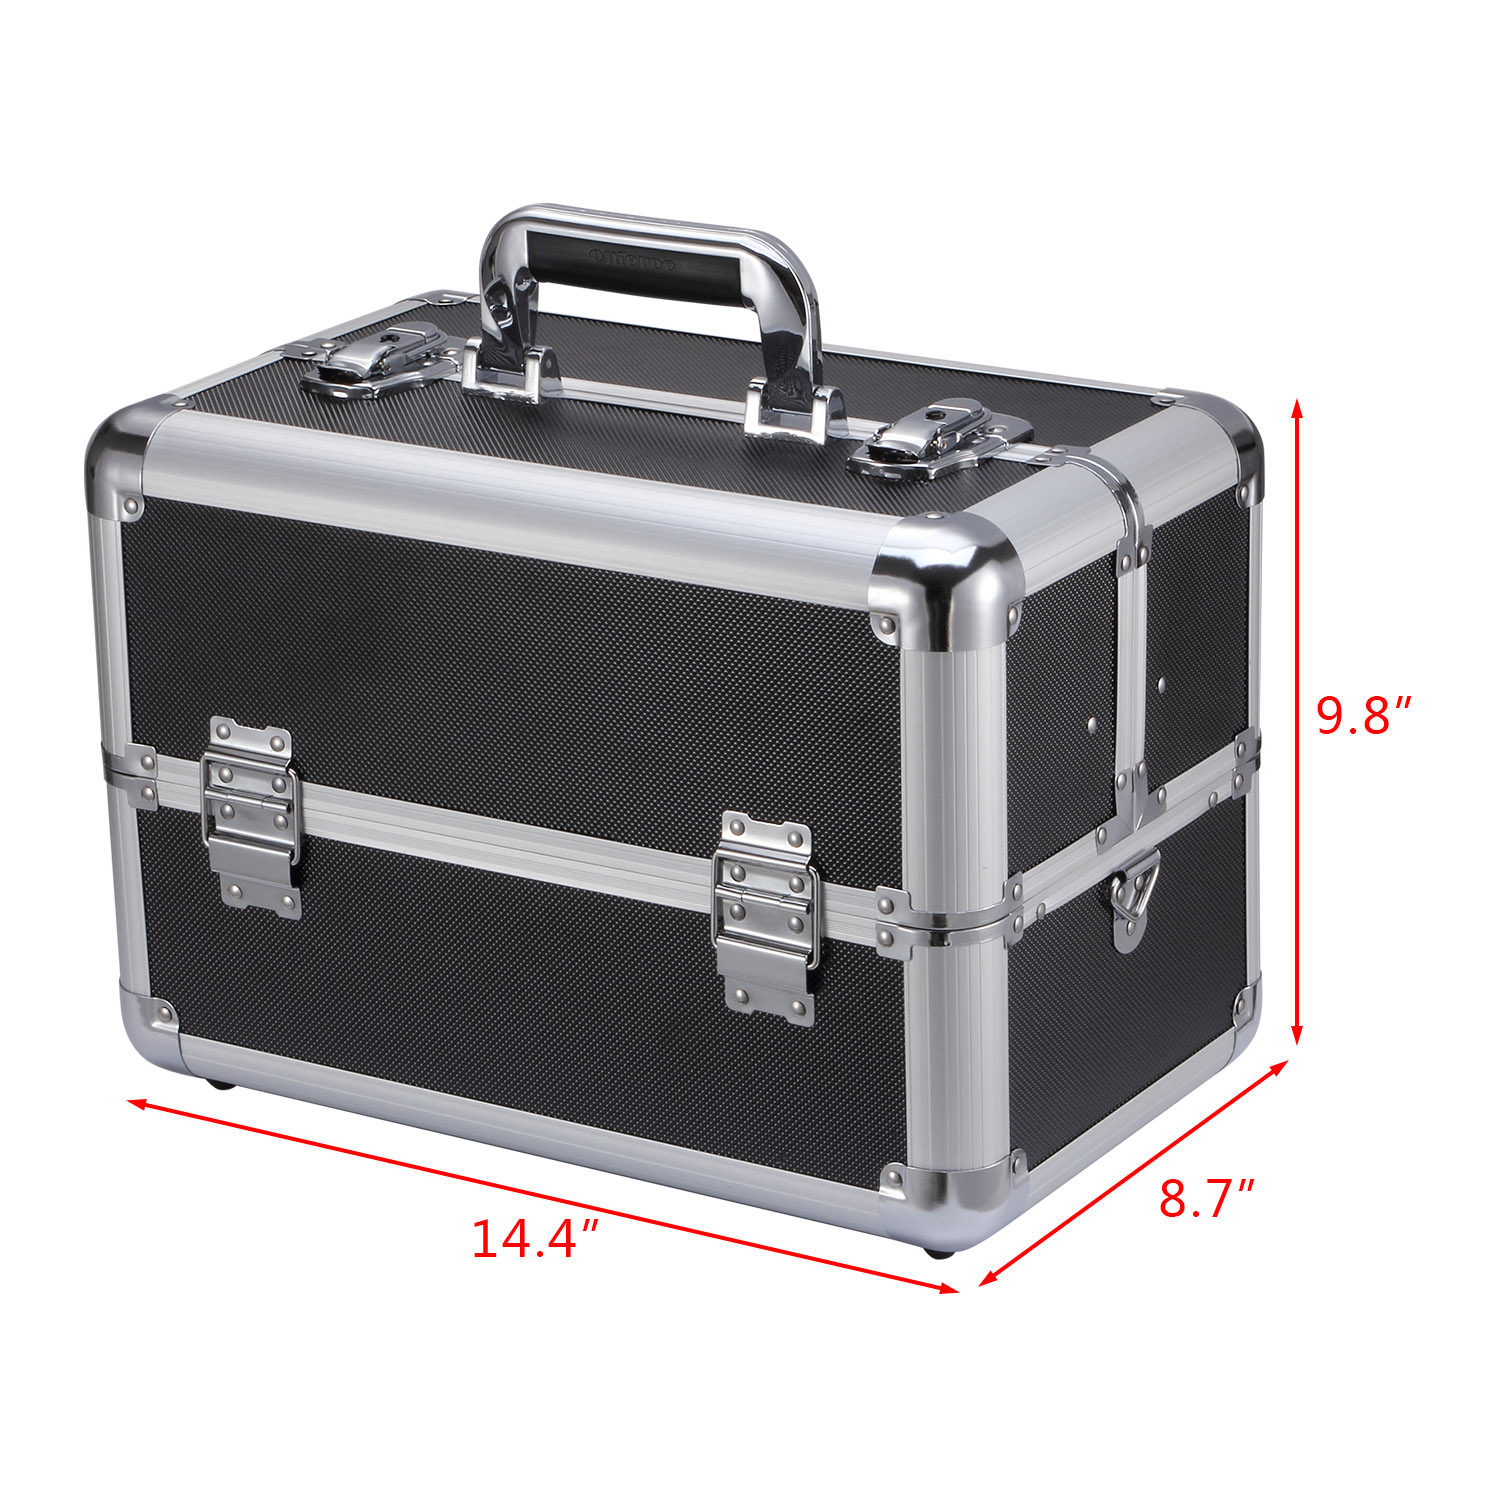 "Makeup Train Case Professional 14.4"" x 8.7"" x 9.8"" Large Makeup Artist Organizer case With Adjustable Dividers Key lock"